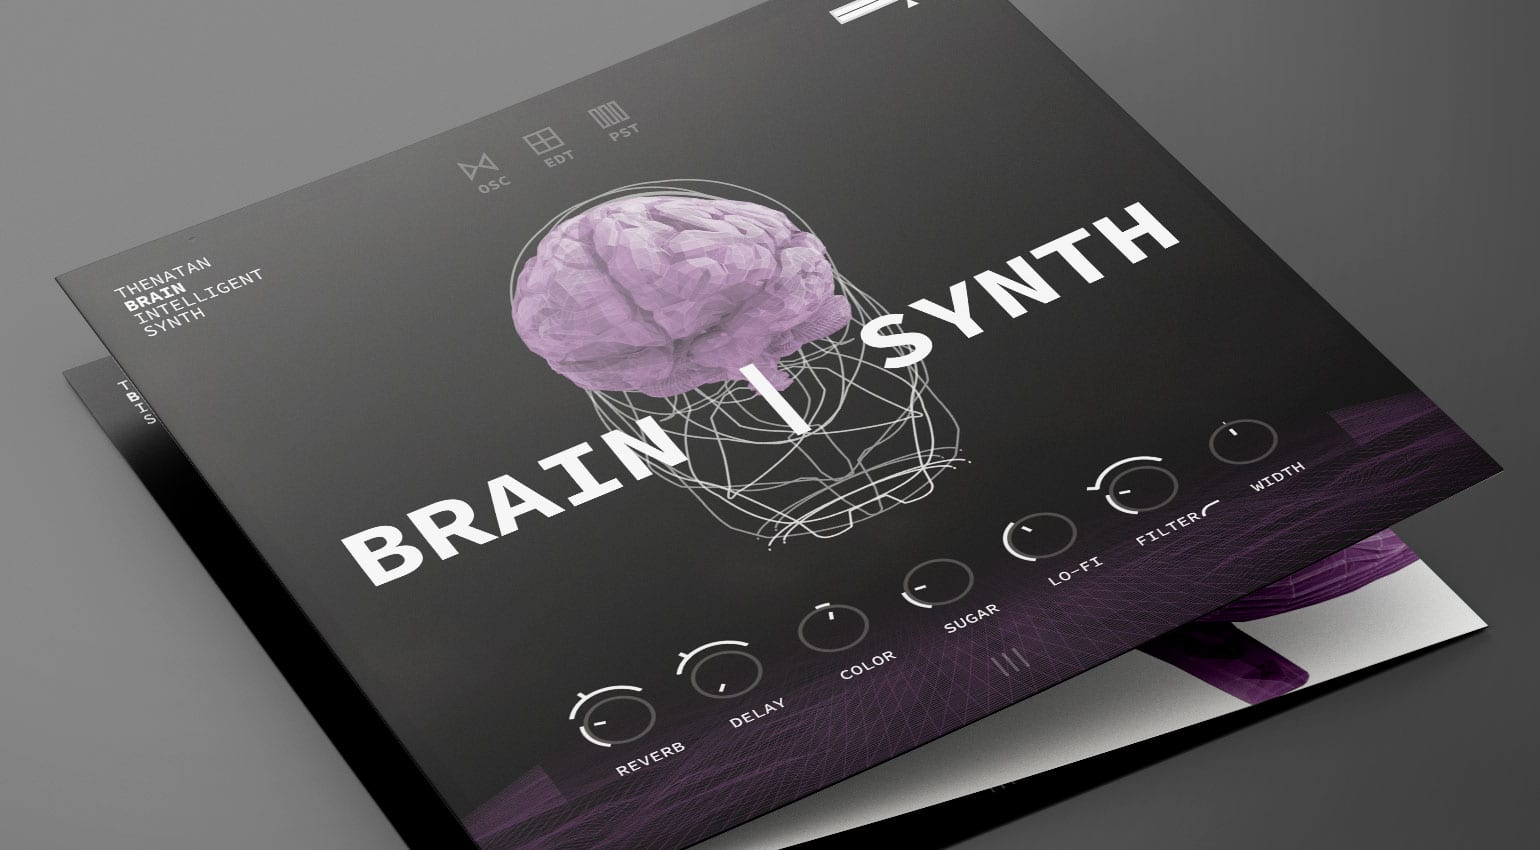 BRAIN – Intelligent Synth: Infinite inspiration with a single click